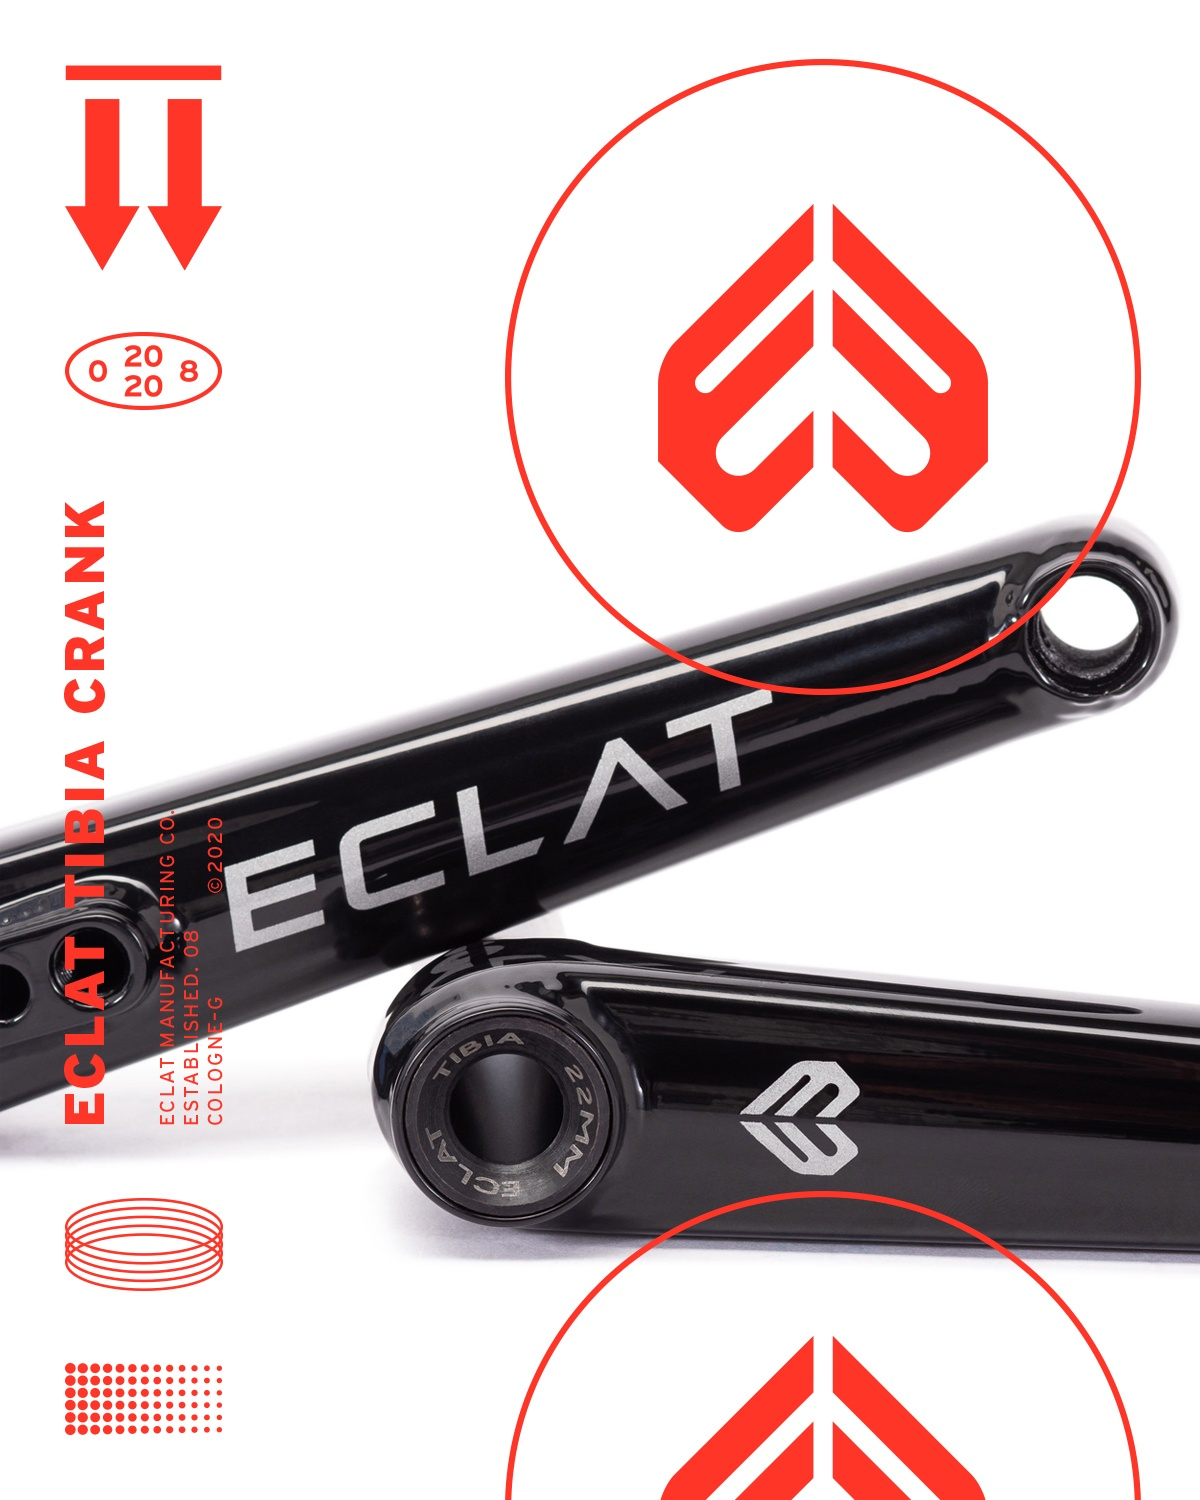 Eclat and Wethepeople coming soon!